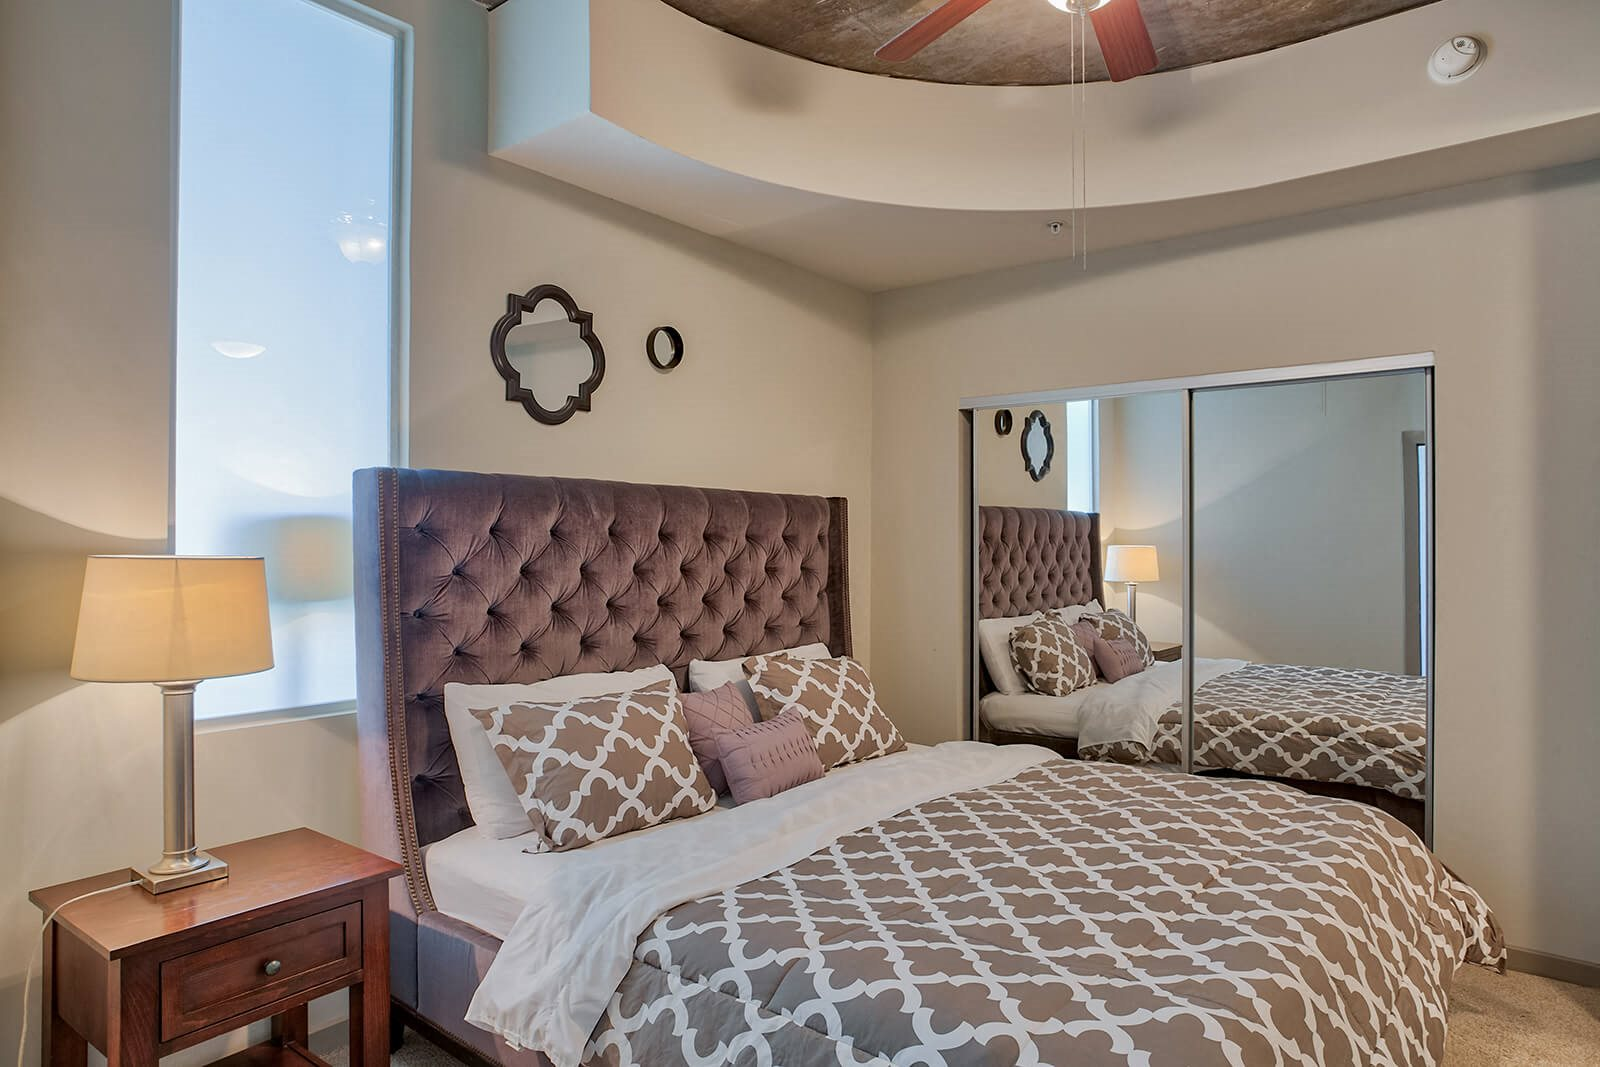 Spacious Bedrooms With Vaulted Ceilings at Glass House by Windsor, Dallas, TX